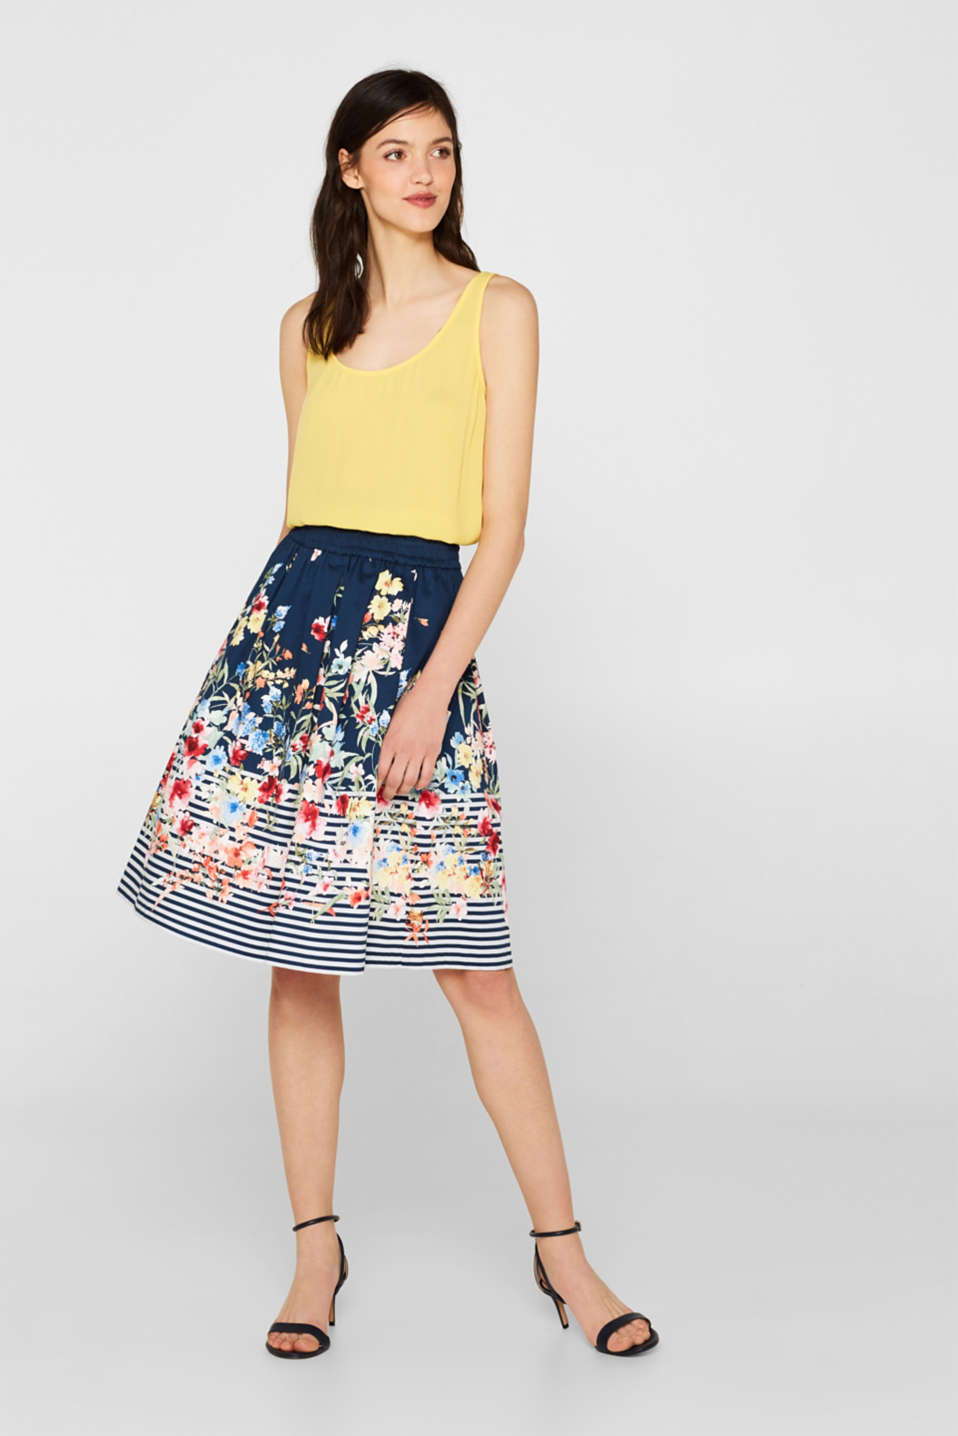 Esprit - A-line skirt made of stretch satin with a mix of patterns